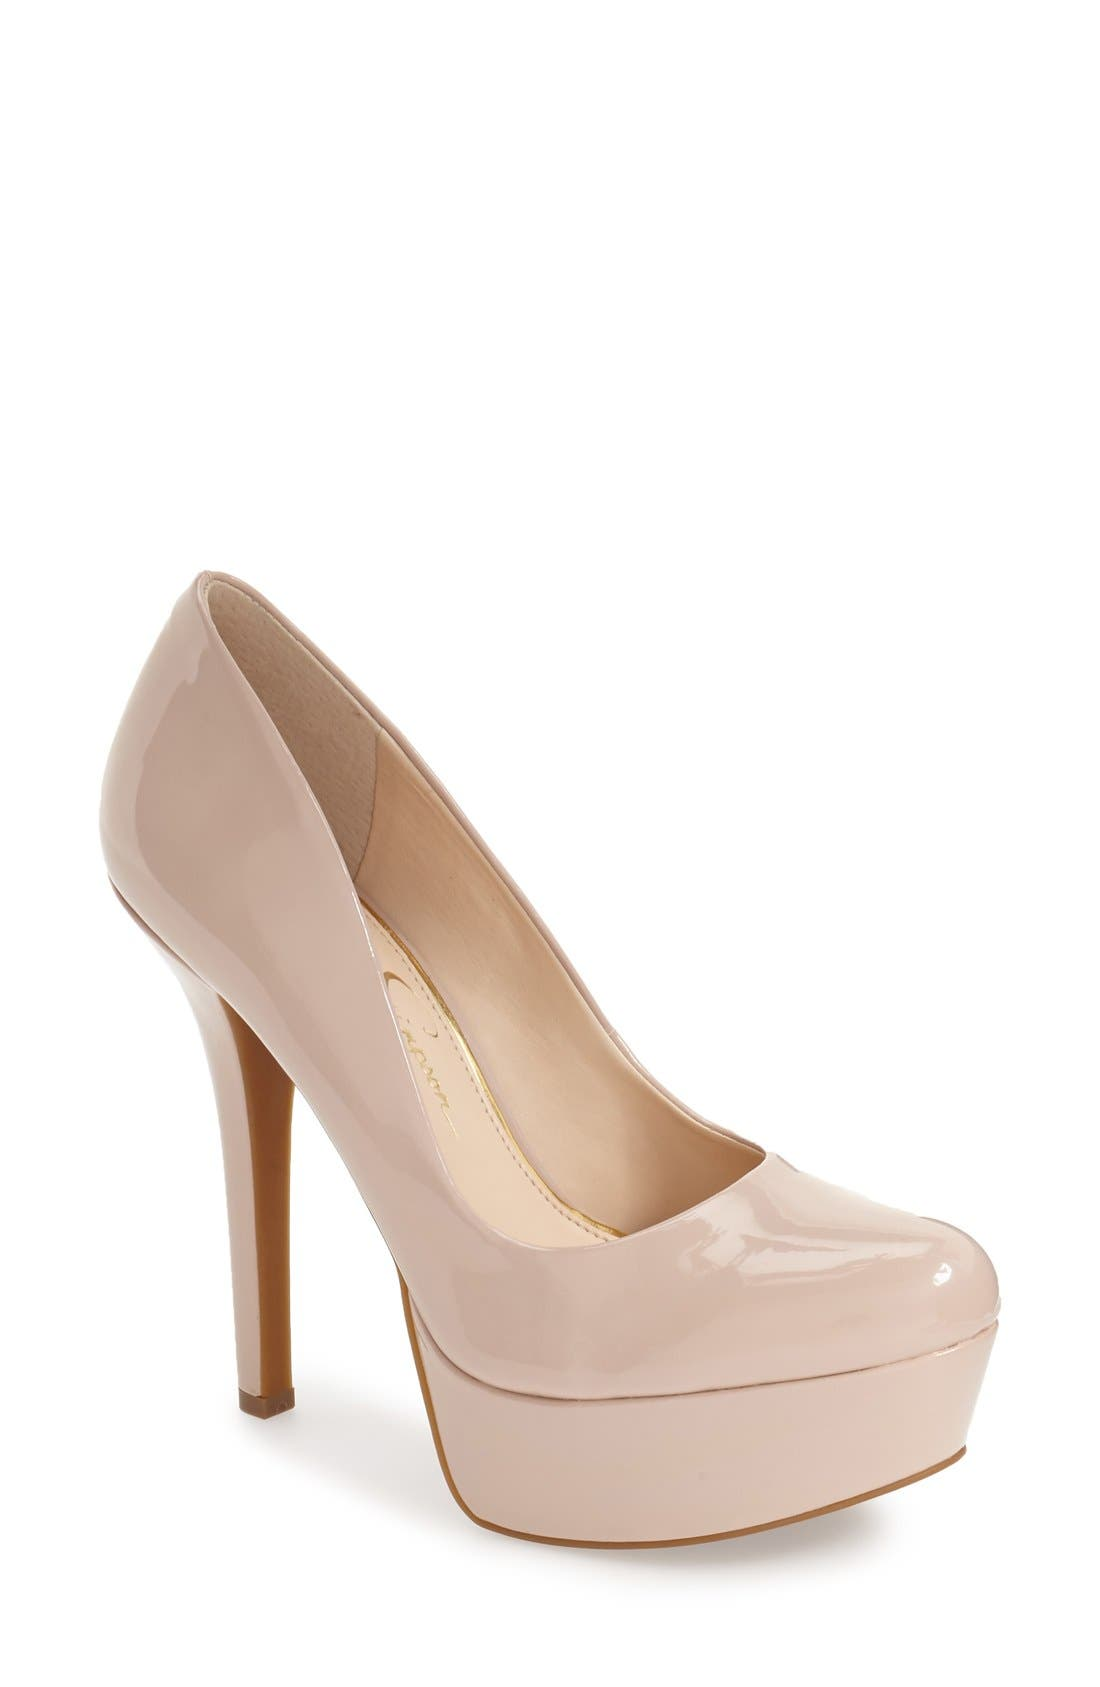 Alternate Image 1 Selected - Jessica Simpson 'Meave' Platform Pump (Women)